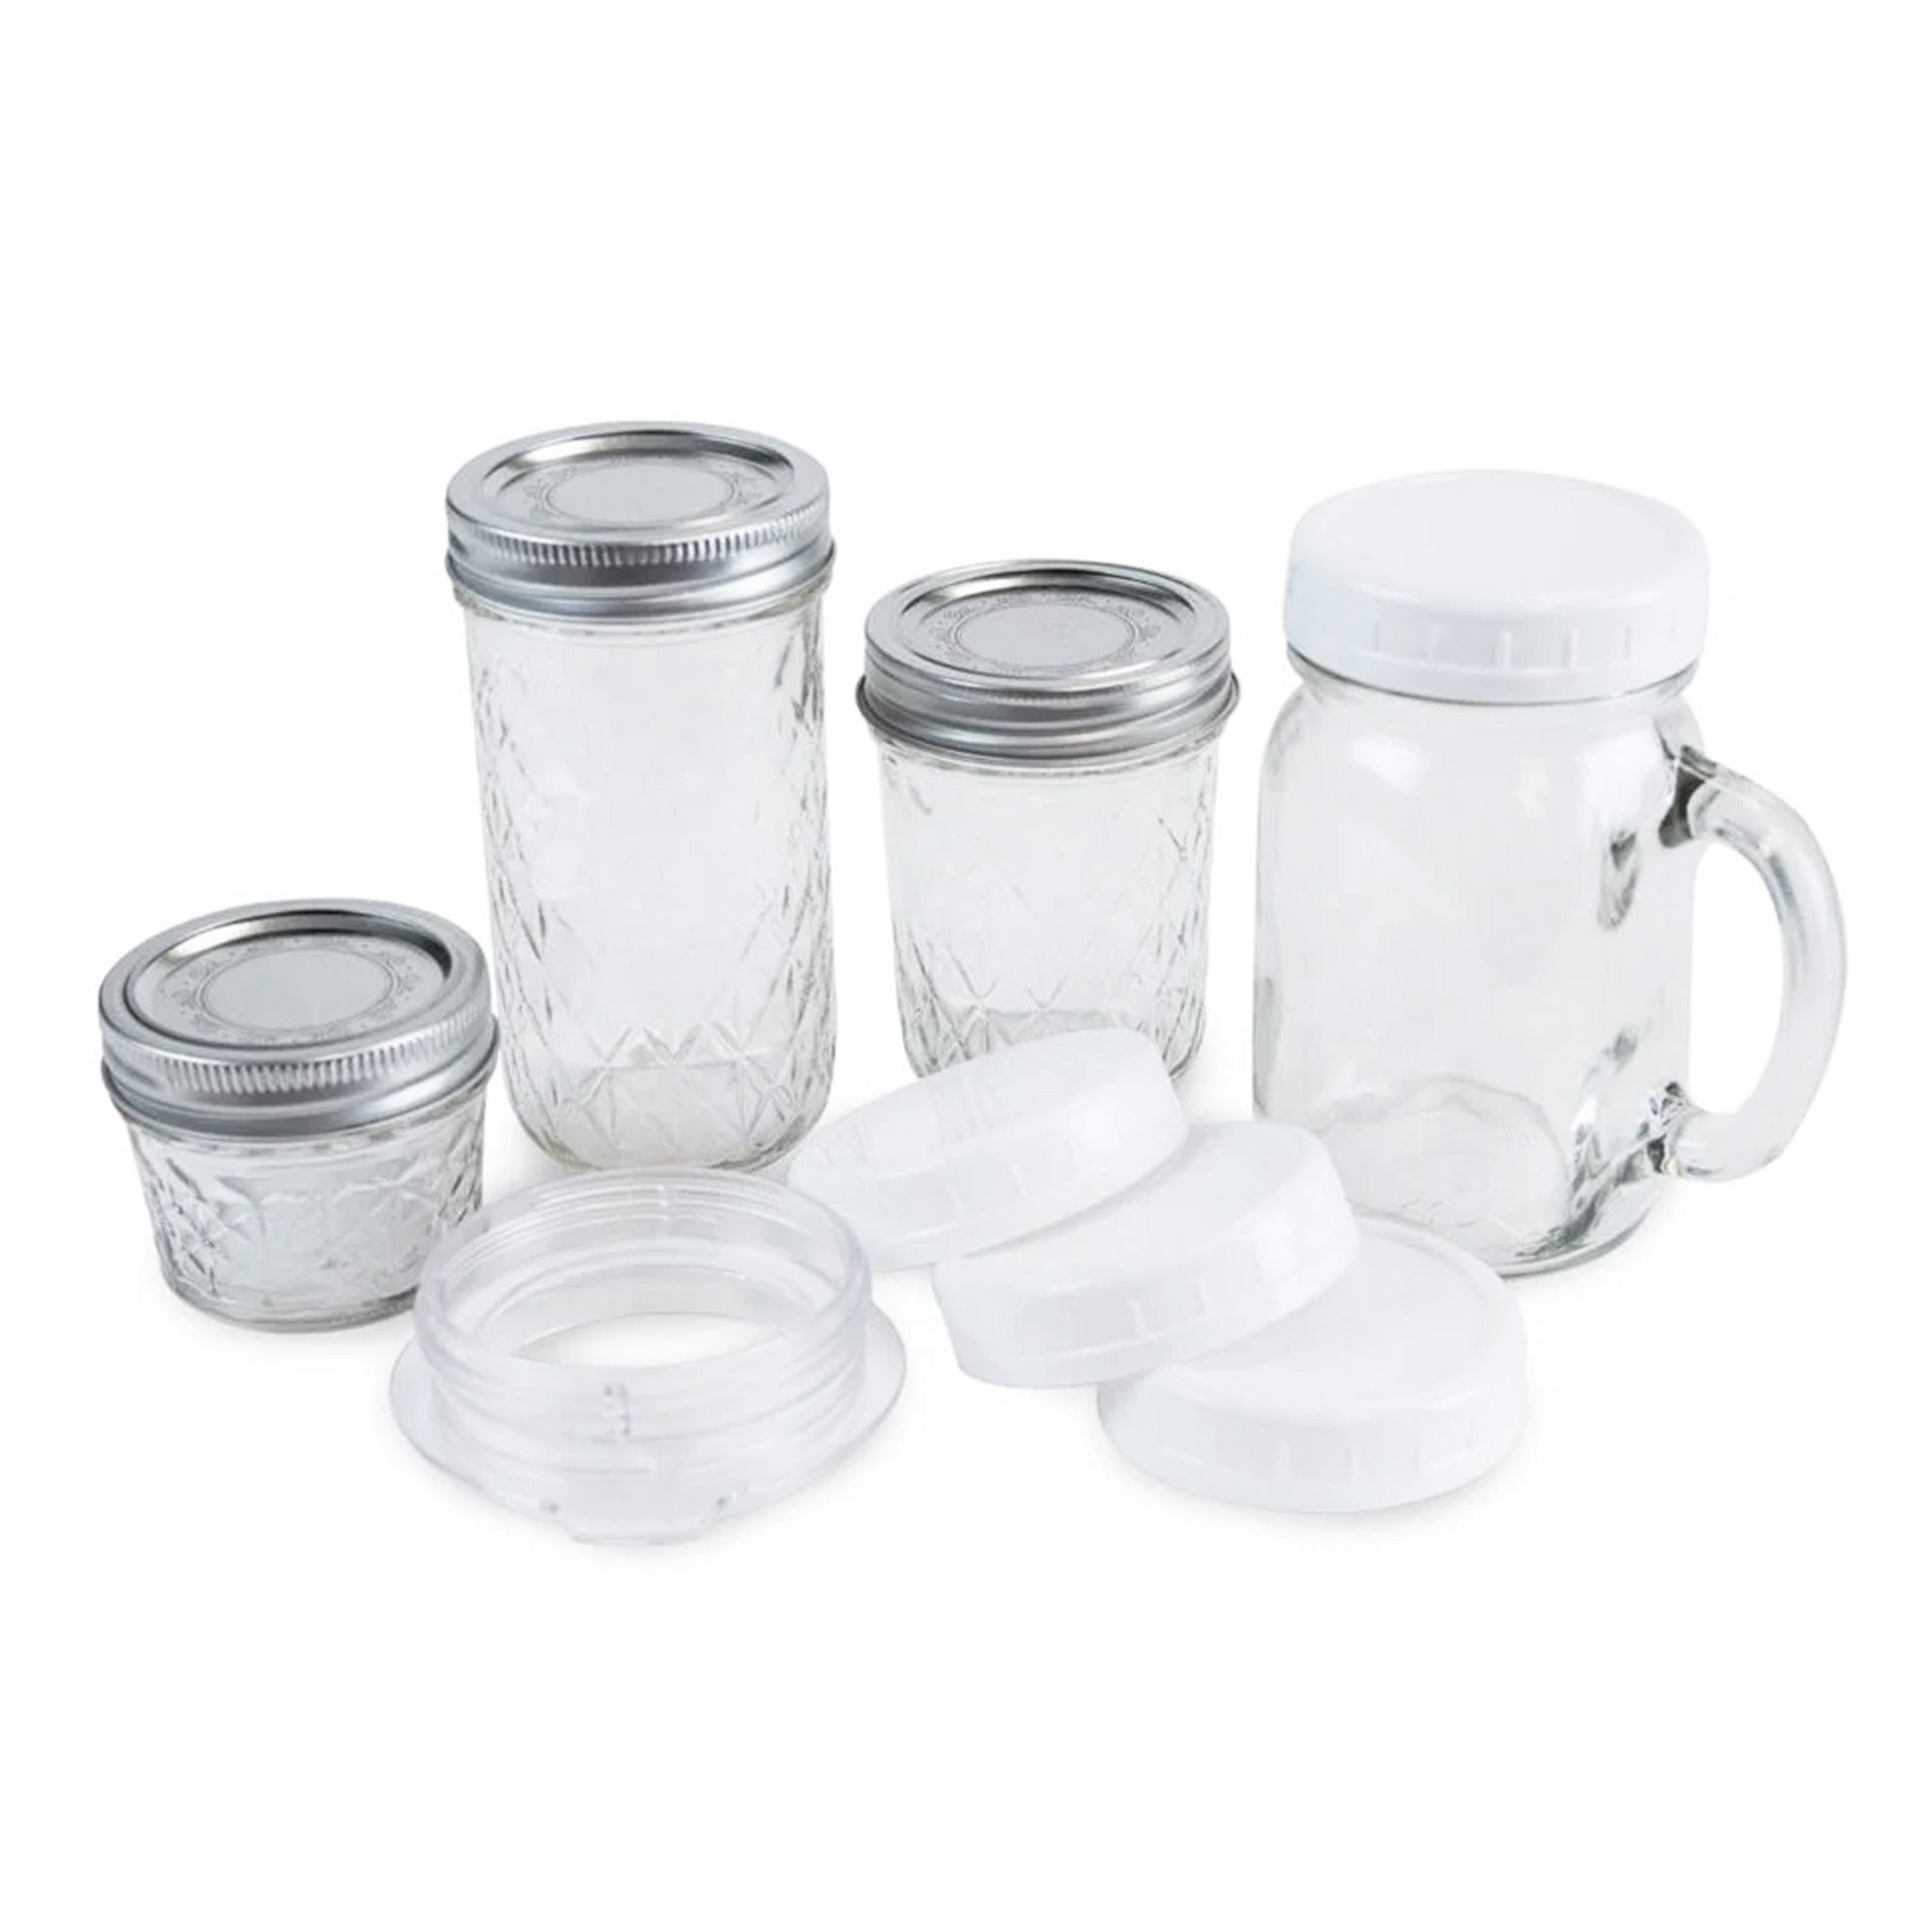 Personal Blender® Mason Jar Upgrade Kit